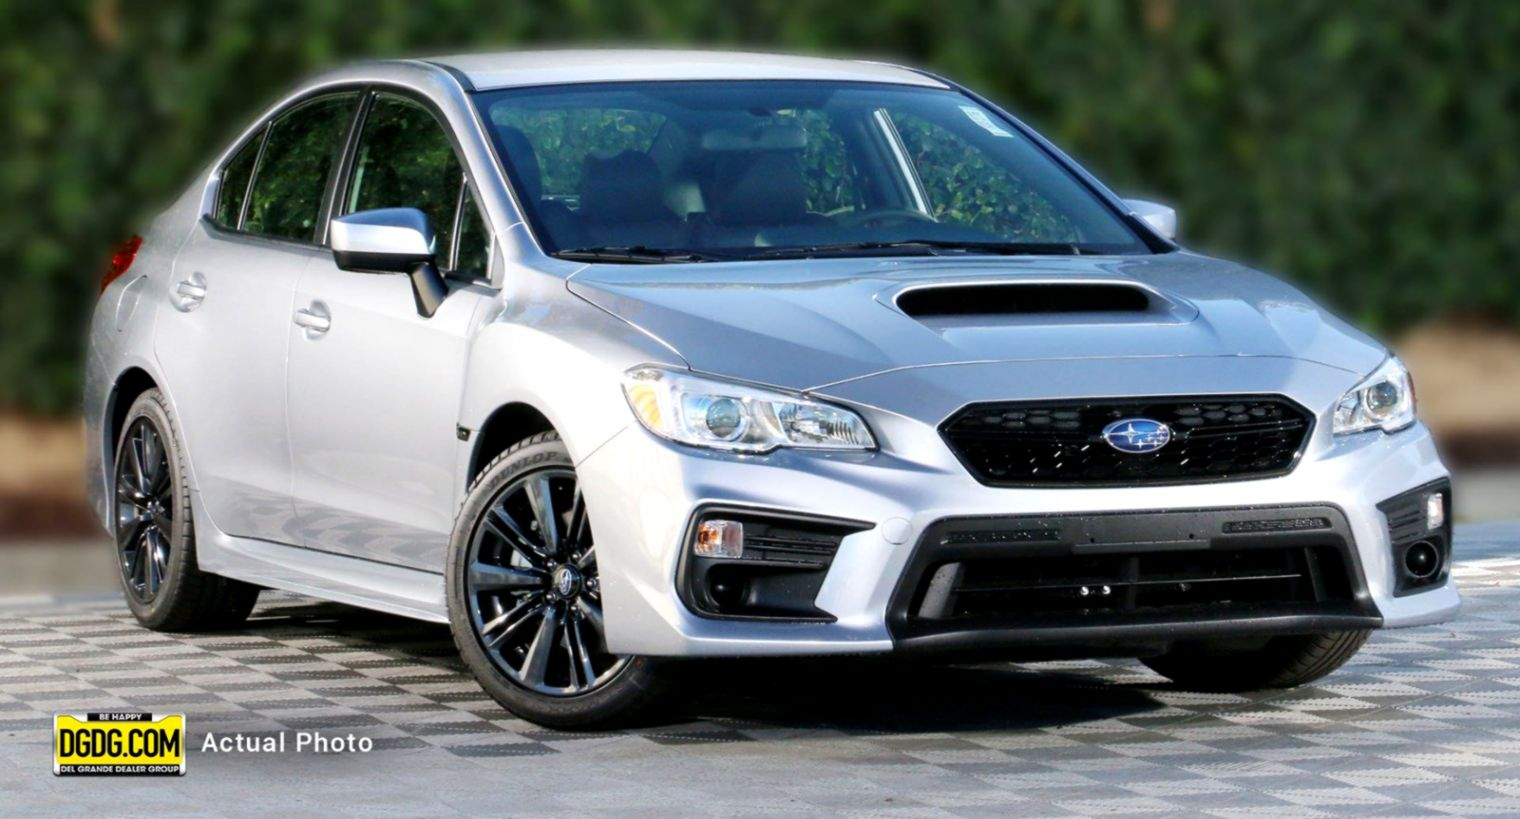 Subaru San Jose >> Subaru Impreza Sti Car Parking Warehouse Hd Wallpaper One